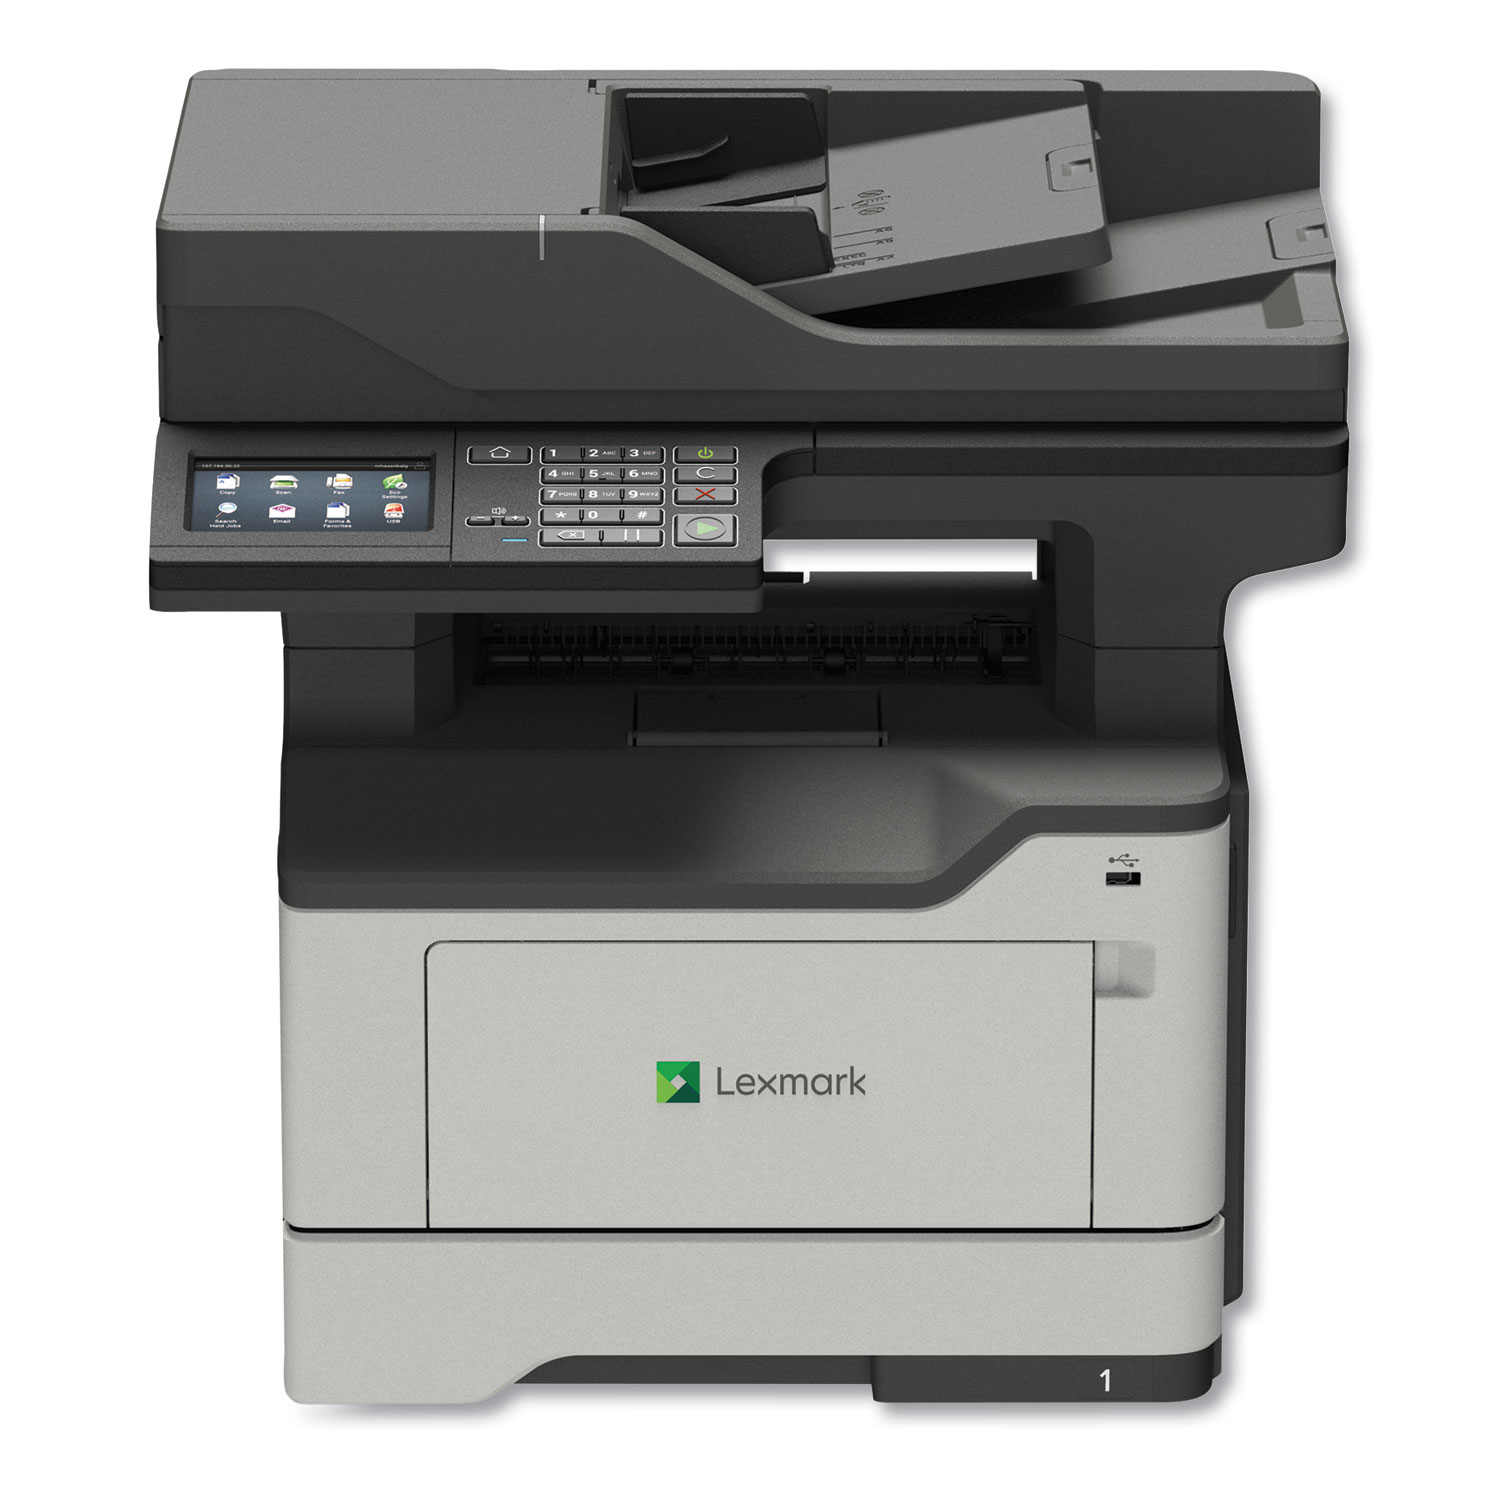 MX521ADE Printer, Copy/Fax/Print/Scan